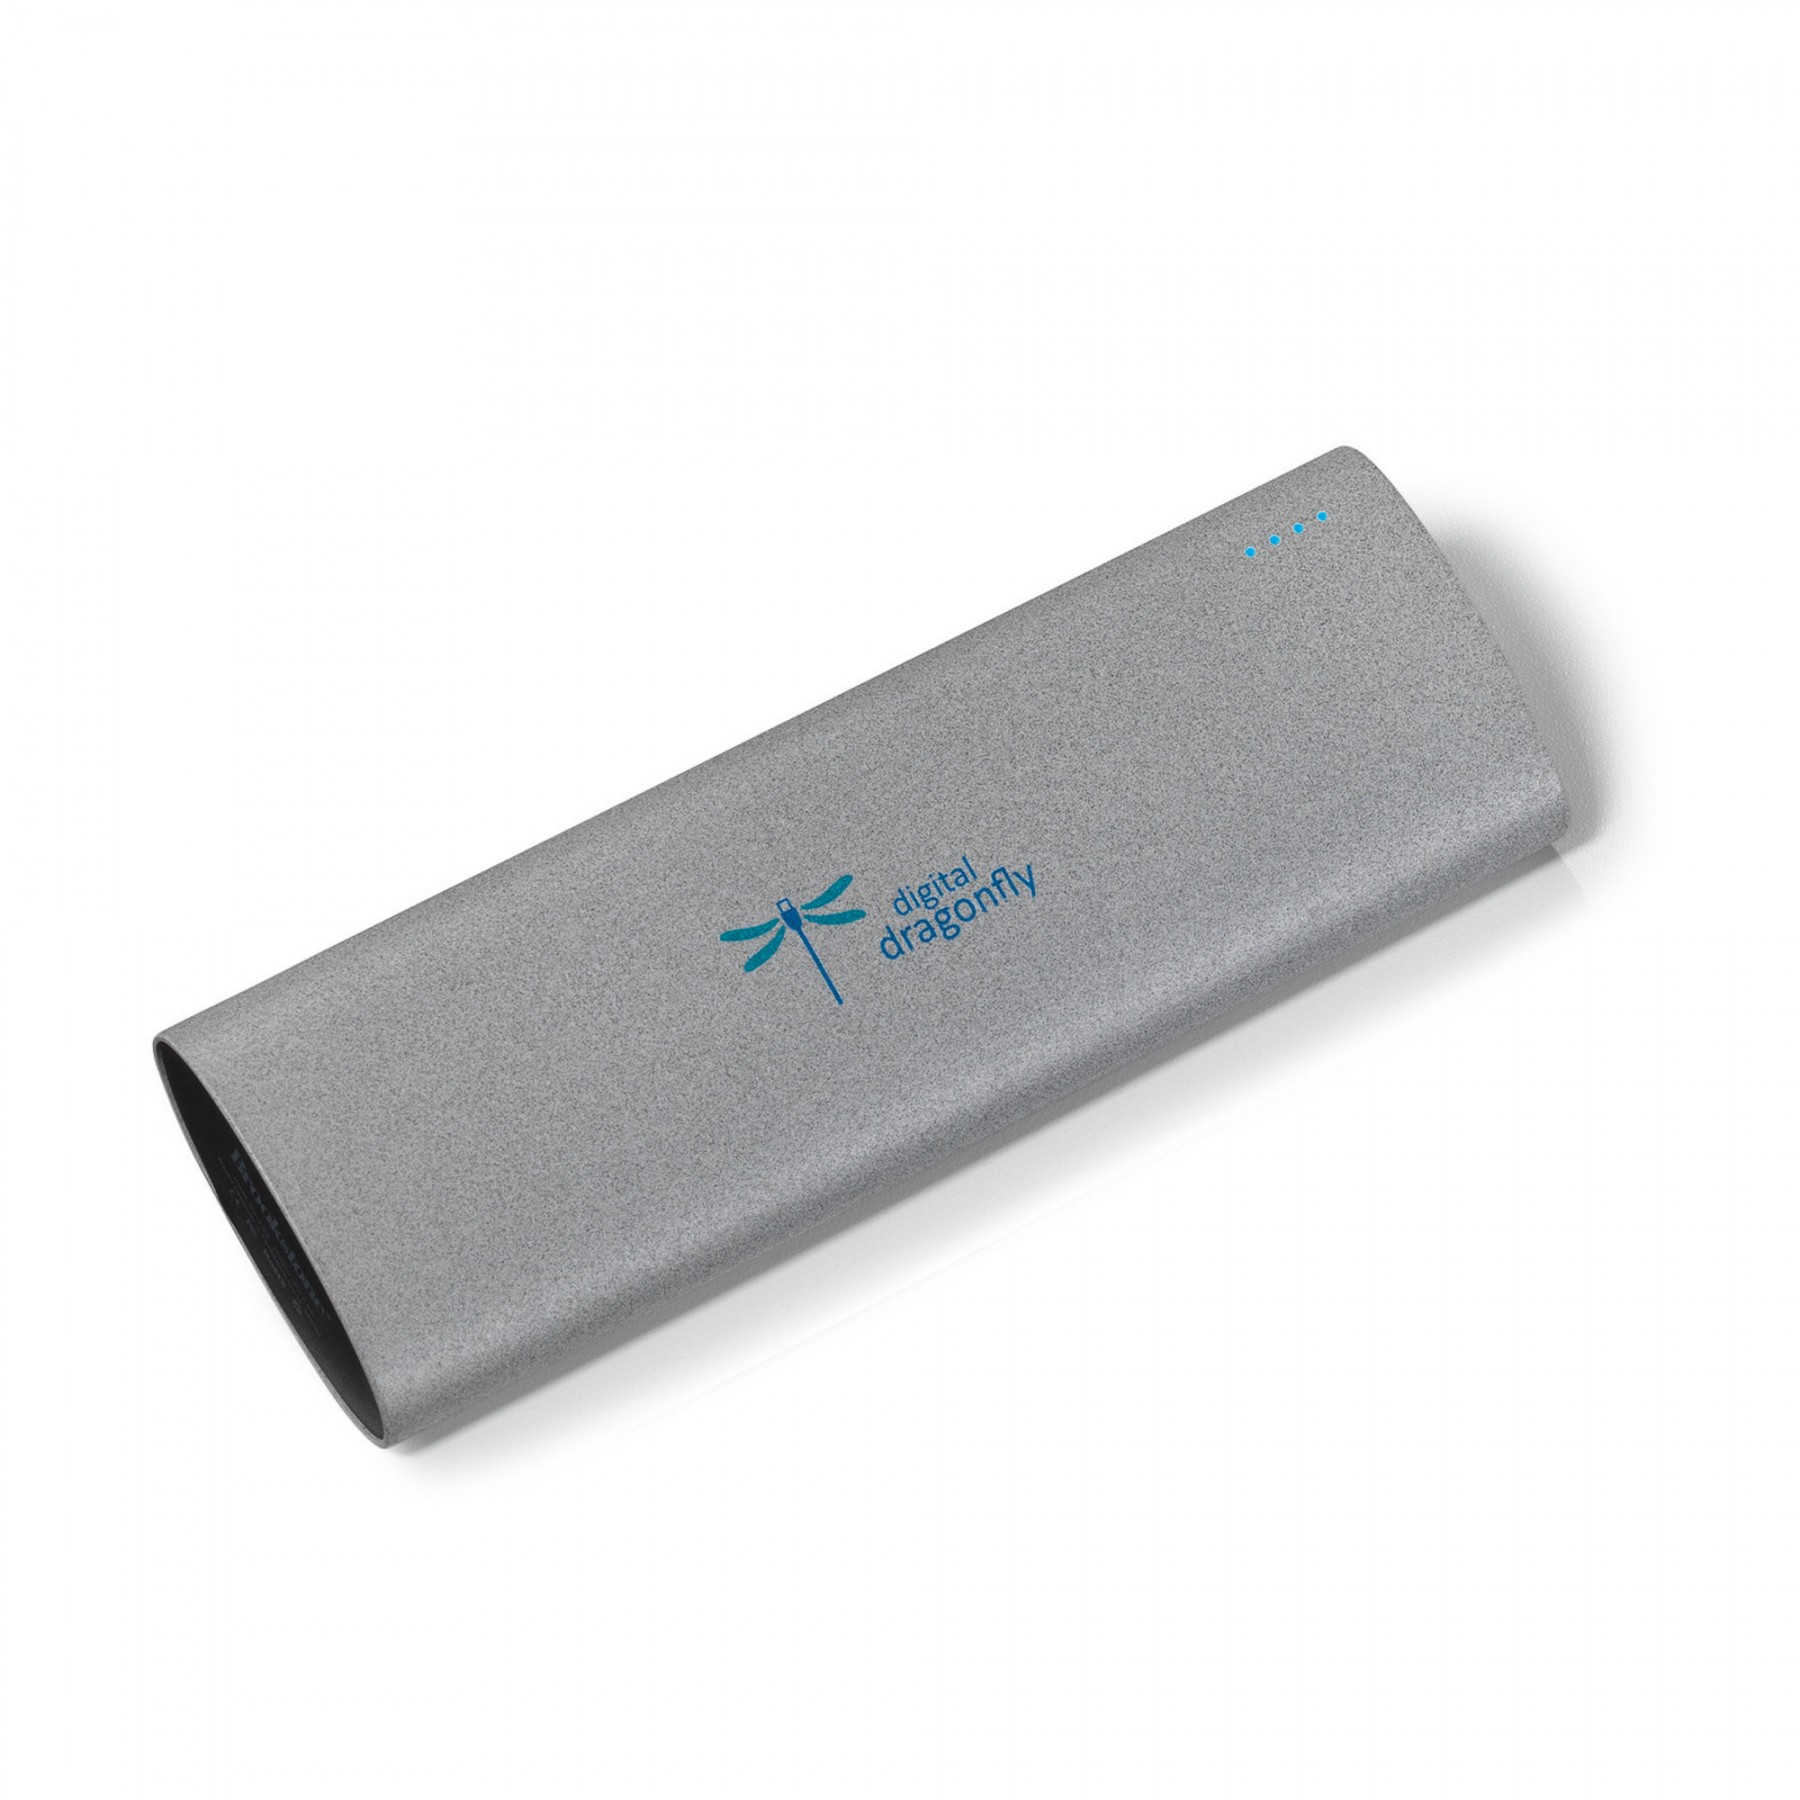 Brookstone Vitality Portable Power Bank - 8800mAh